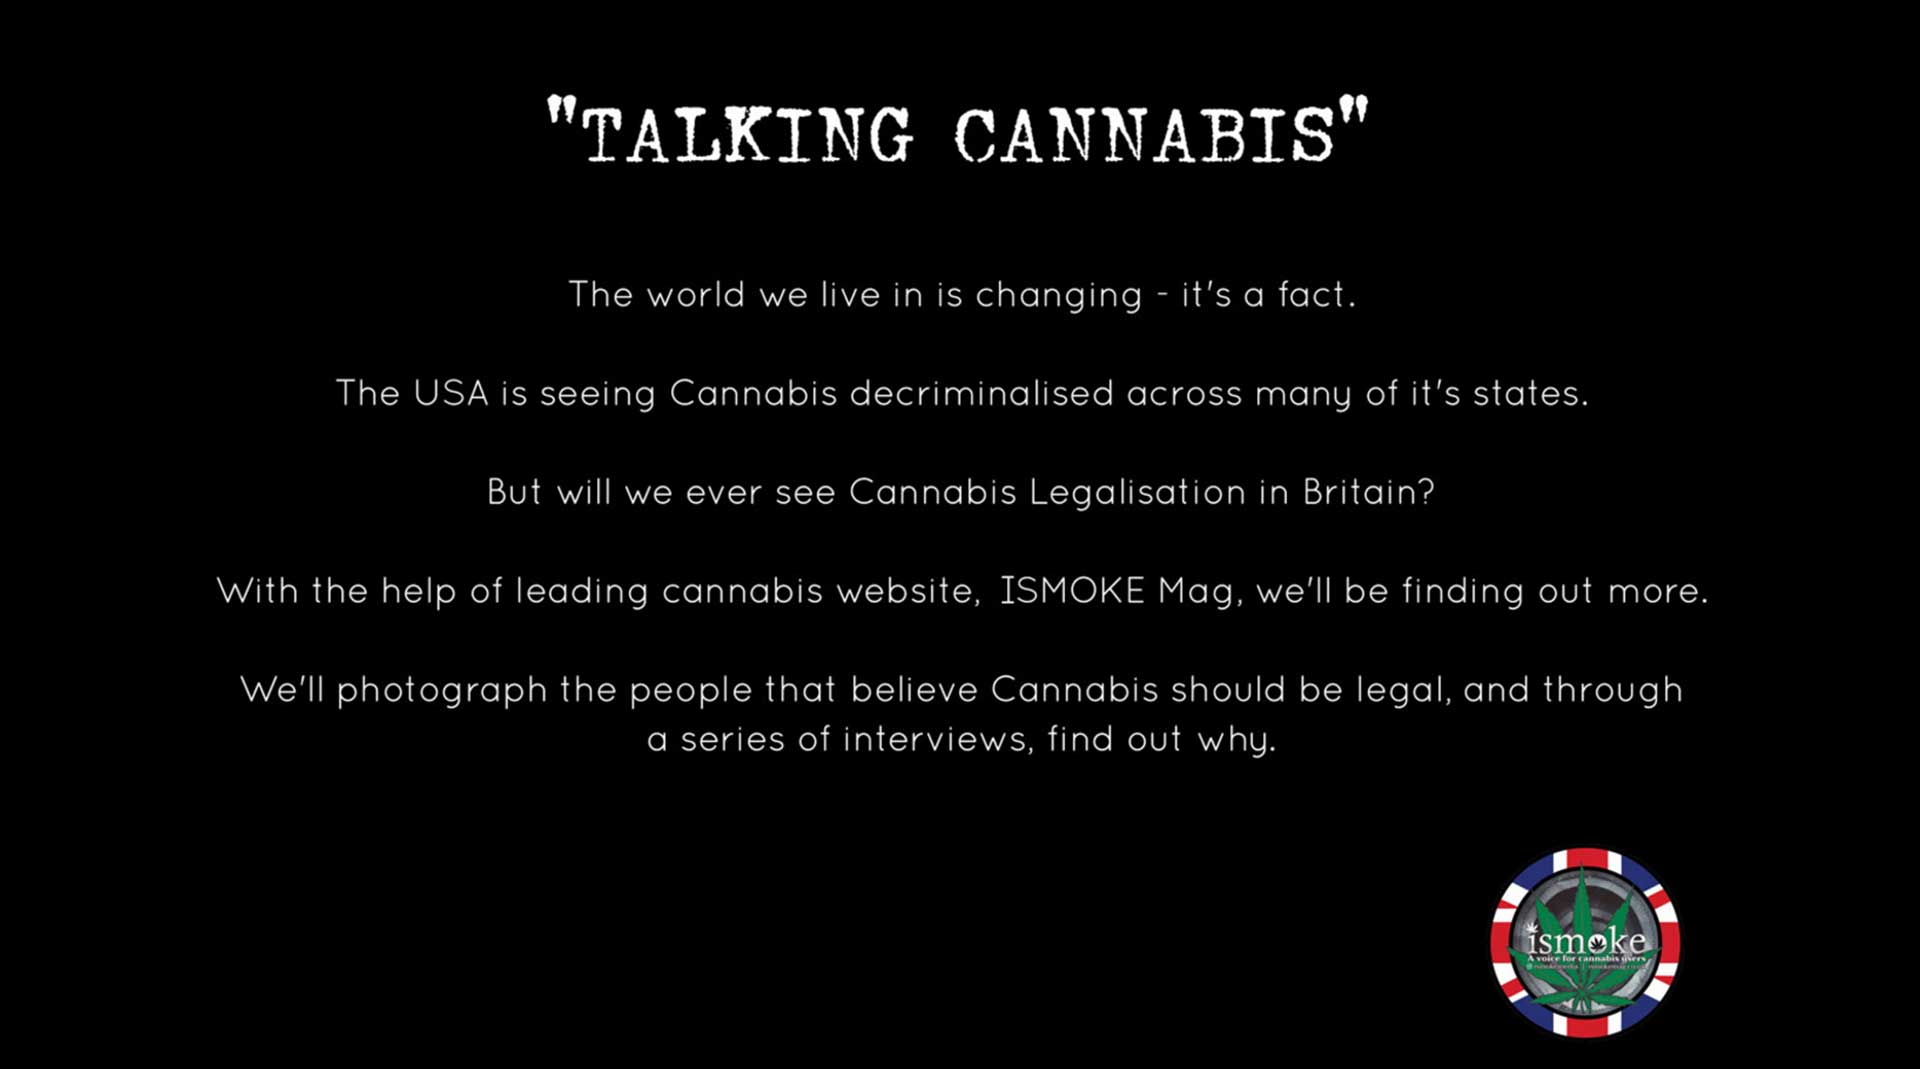 talkingcannabis